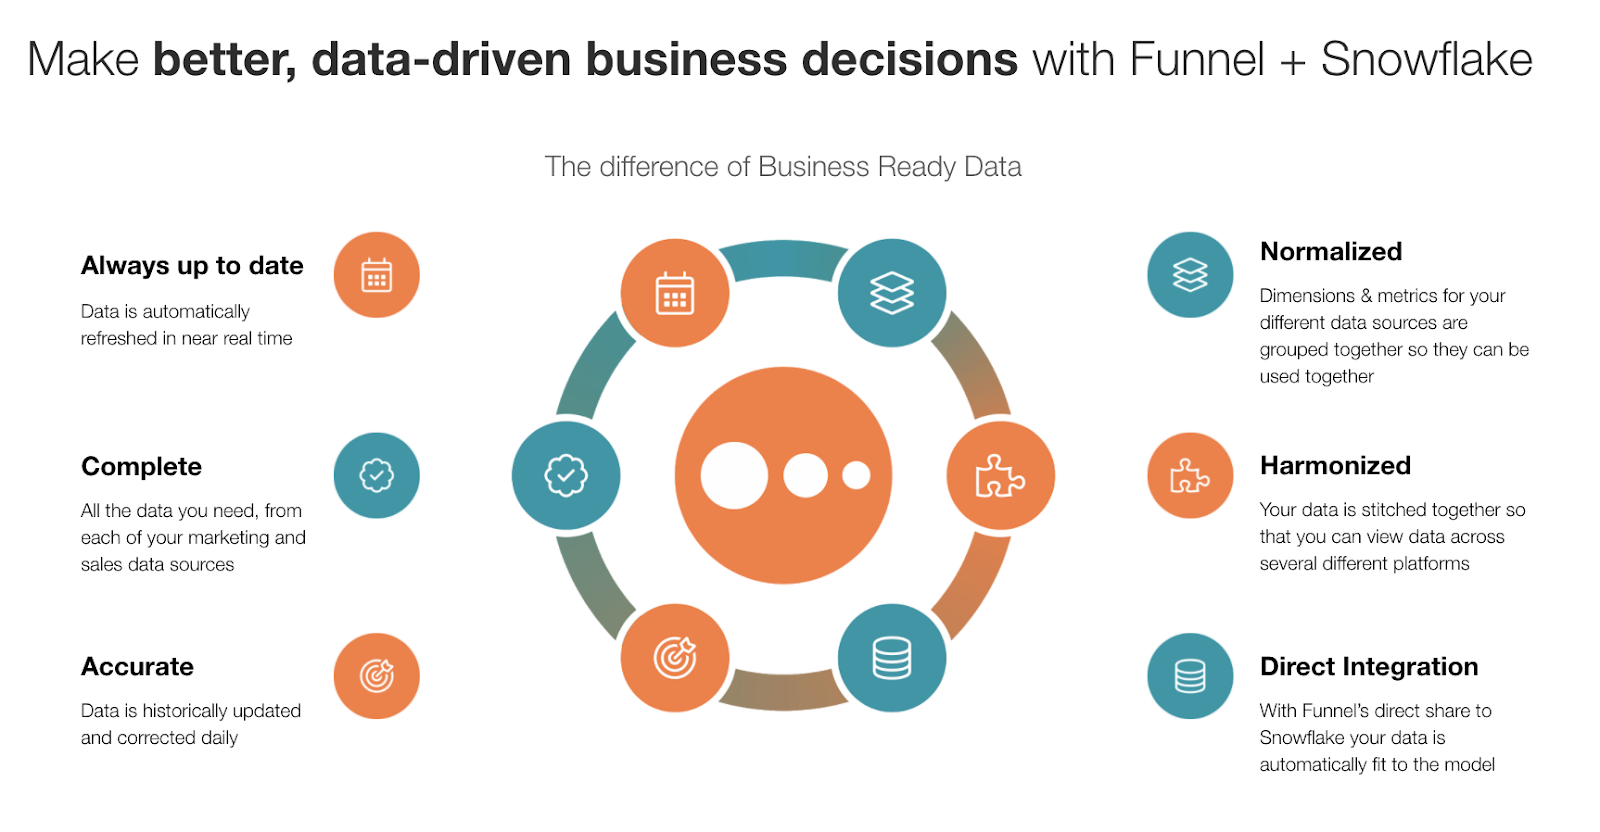 make better, data-driven business decisions with Funnel and Snowflake